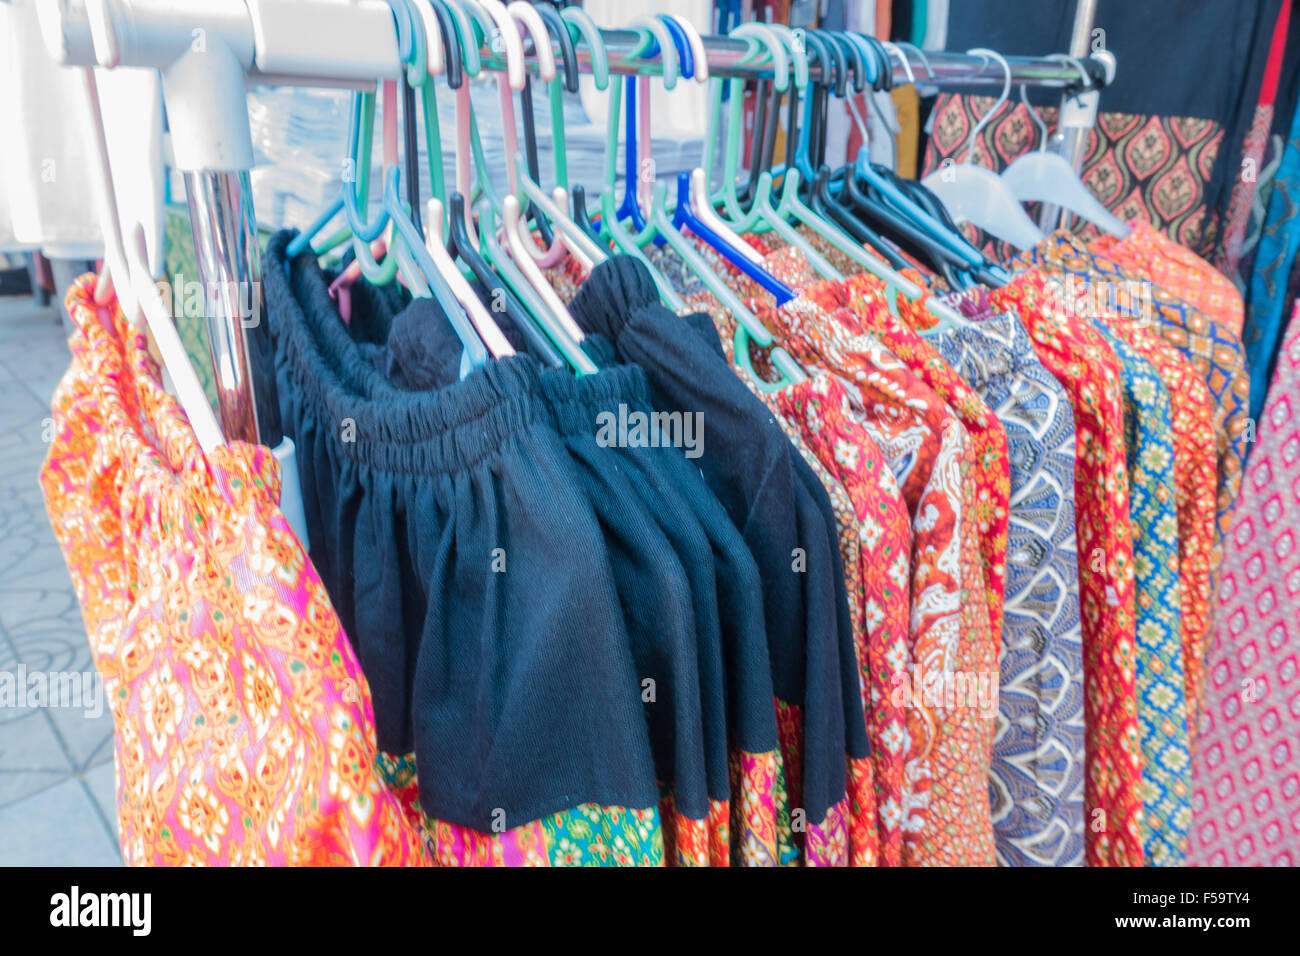 Handmade cloth from farmers, agricultural fairs - Stock Image